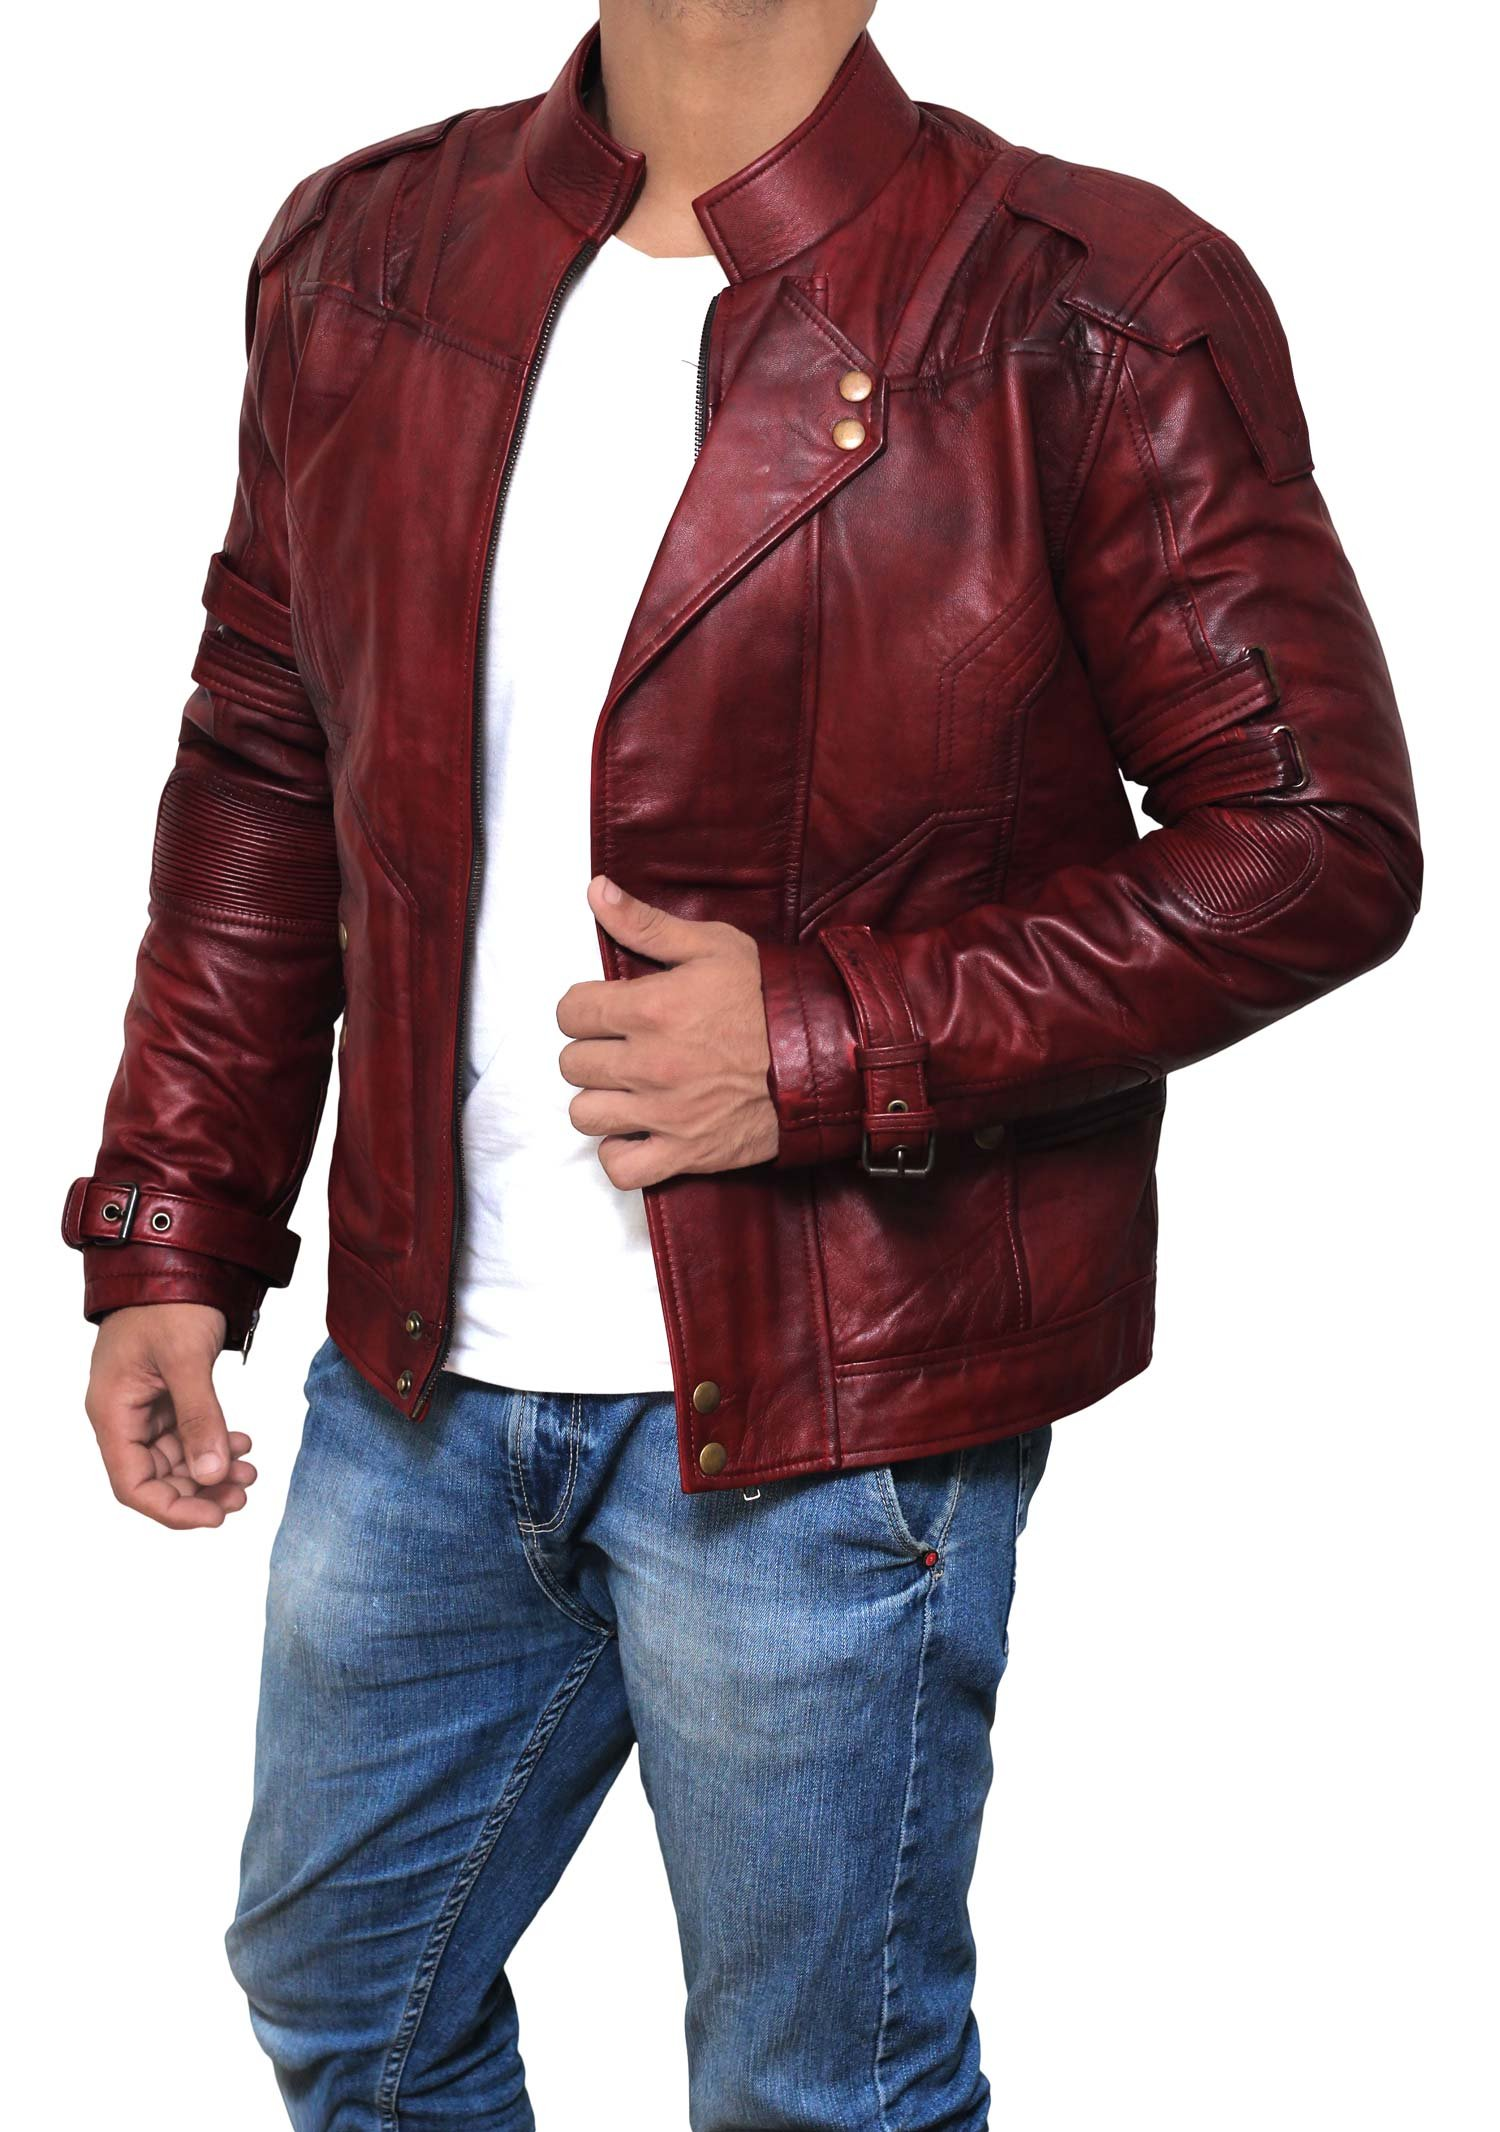 Galaxy Real Leather Jacket ►BEST SELLER◄ M by fjackets (Image #2)